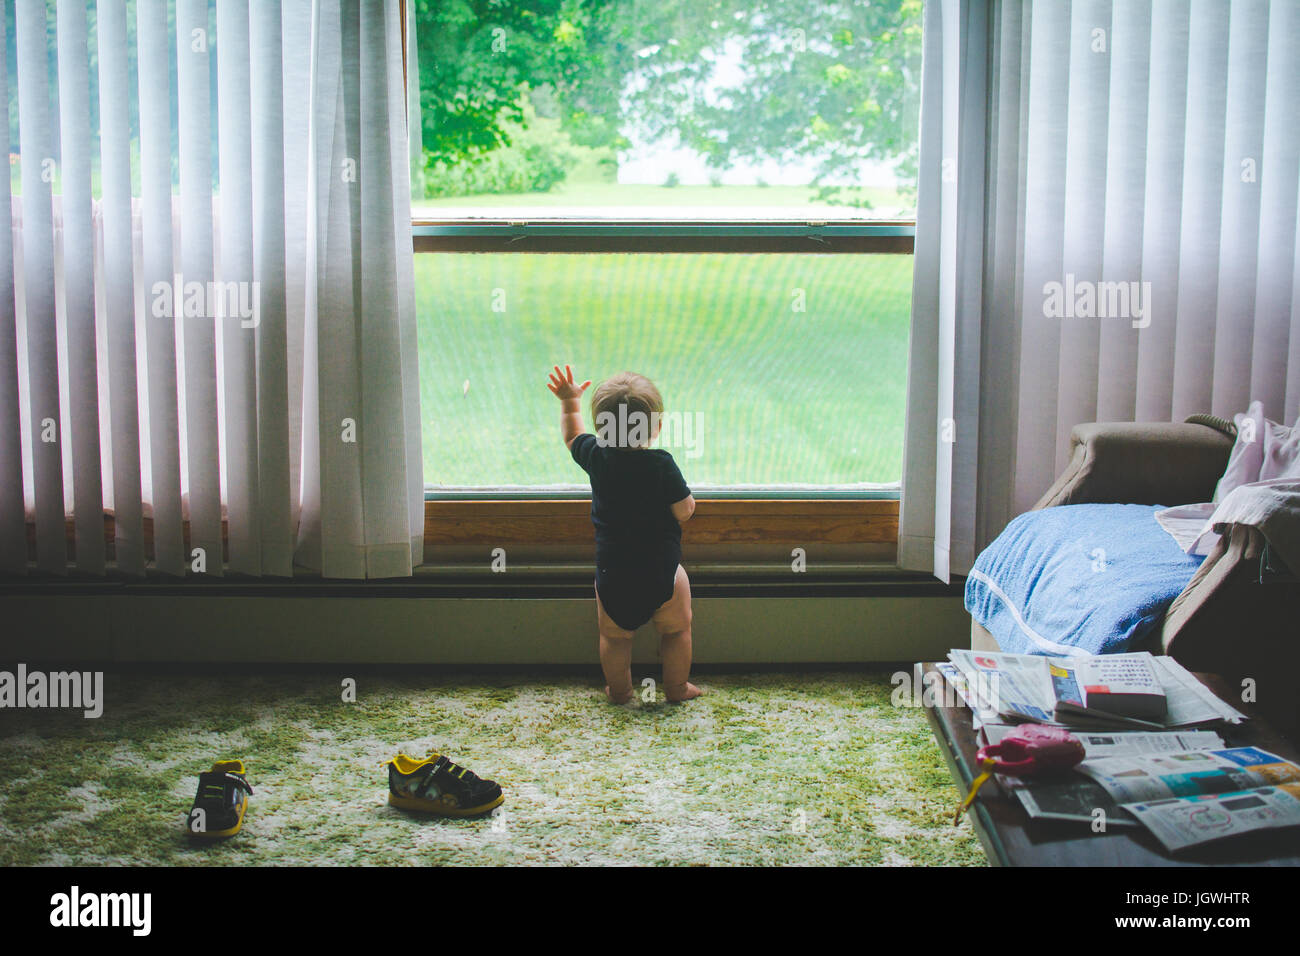 An infant stands with her hand on a window - Stock Image